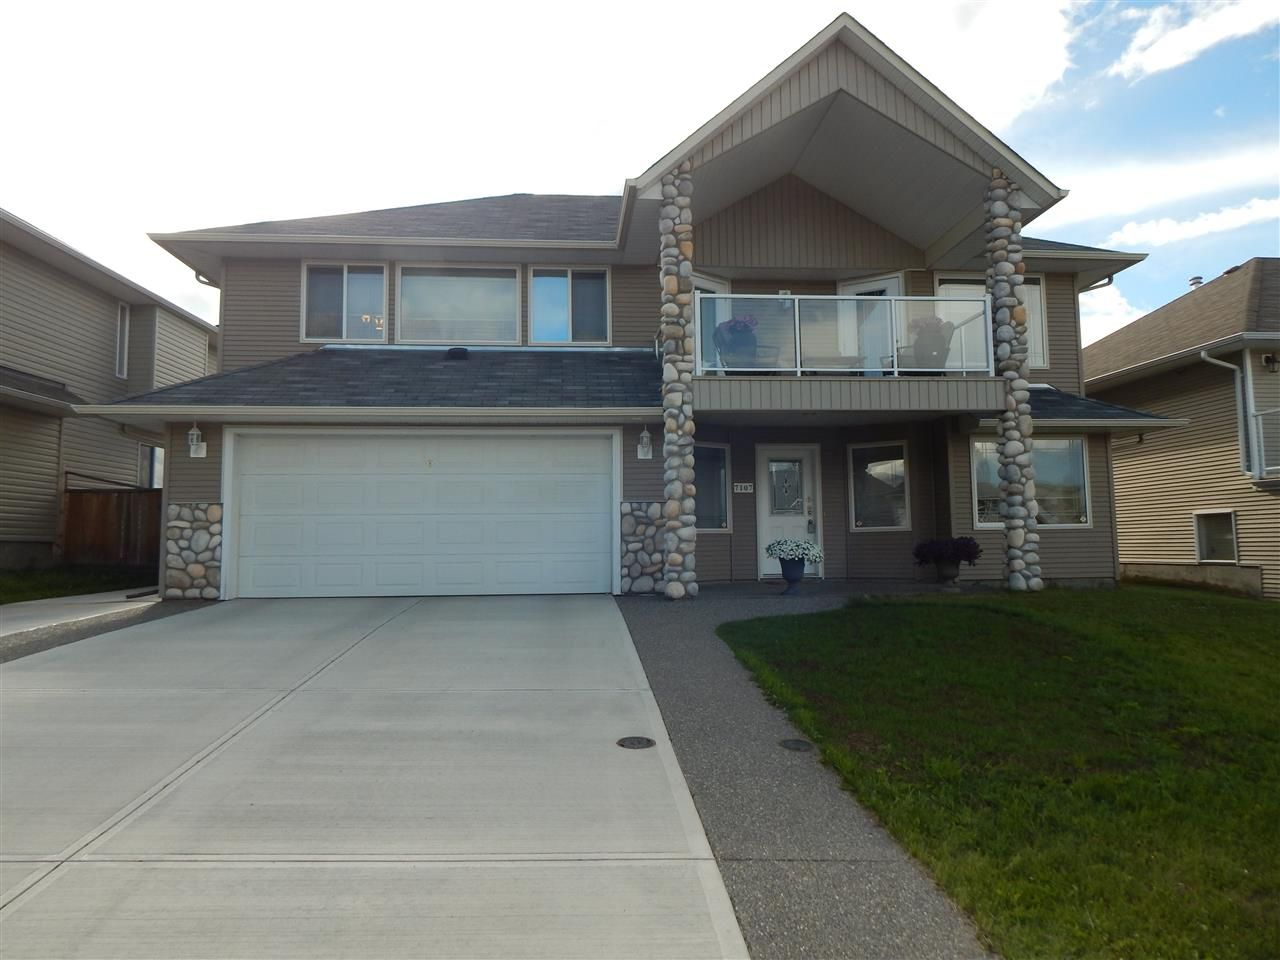 Main Photo: 7107 WESTGATE Avenue in Prince George: Lafreniere House for sale (PG City South (Zone 74))  : MLS®# R2382643